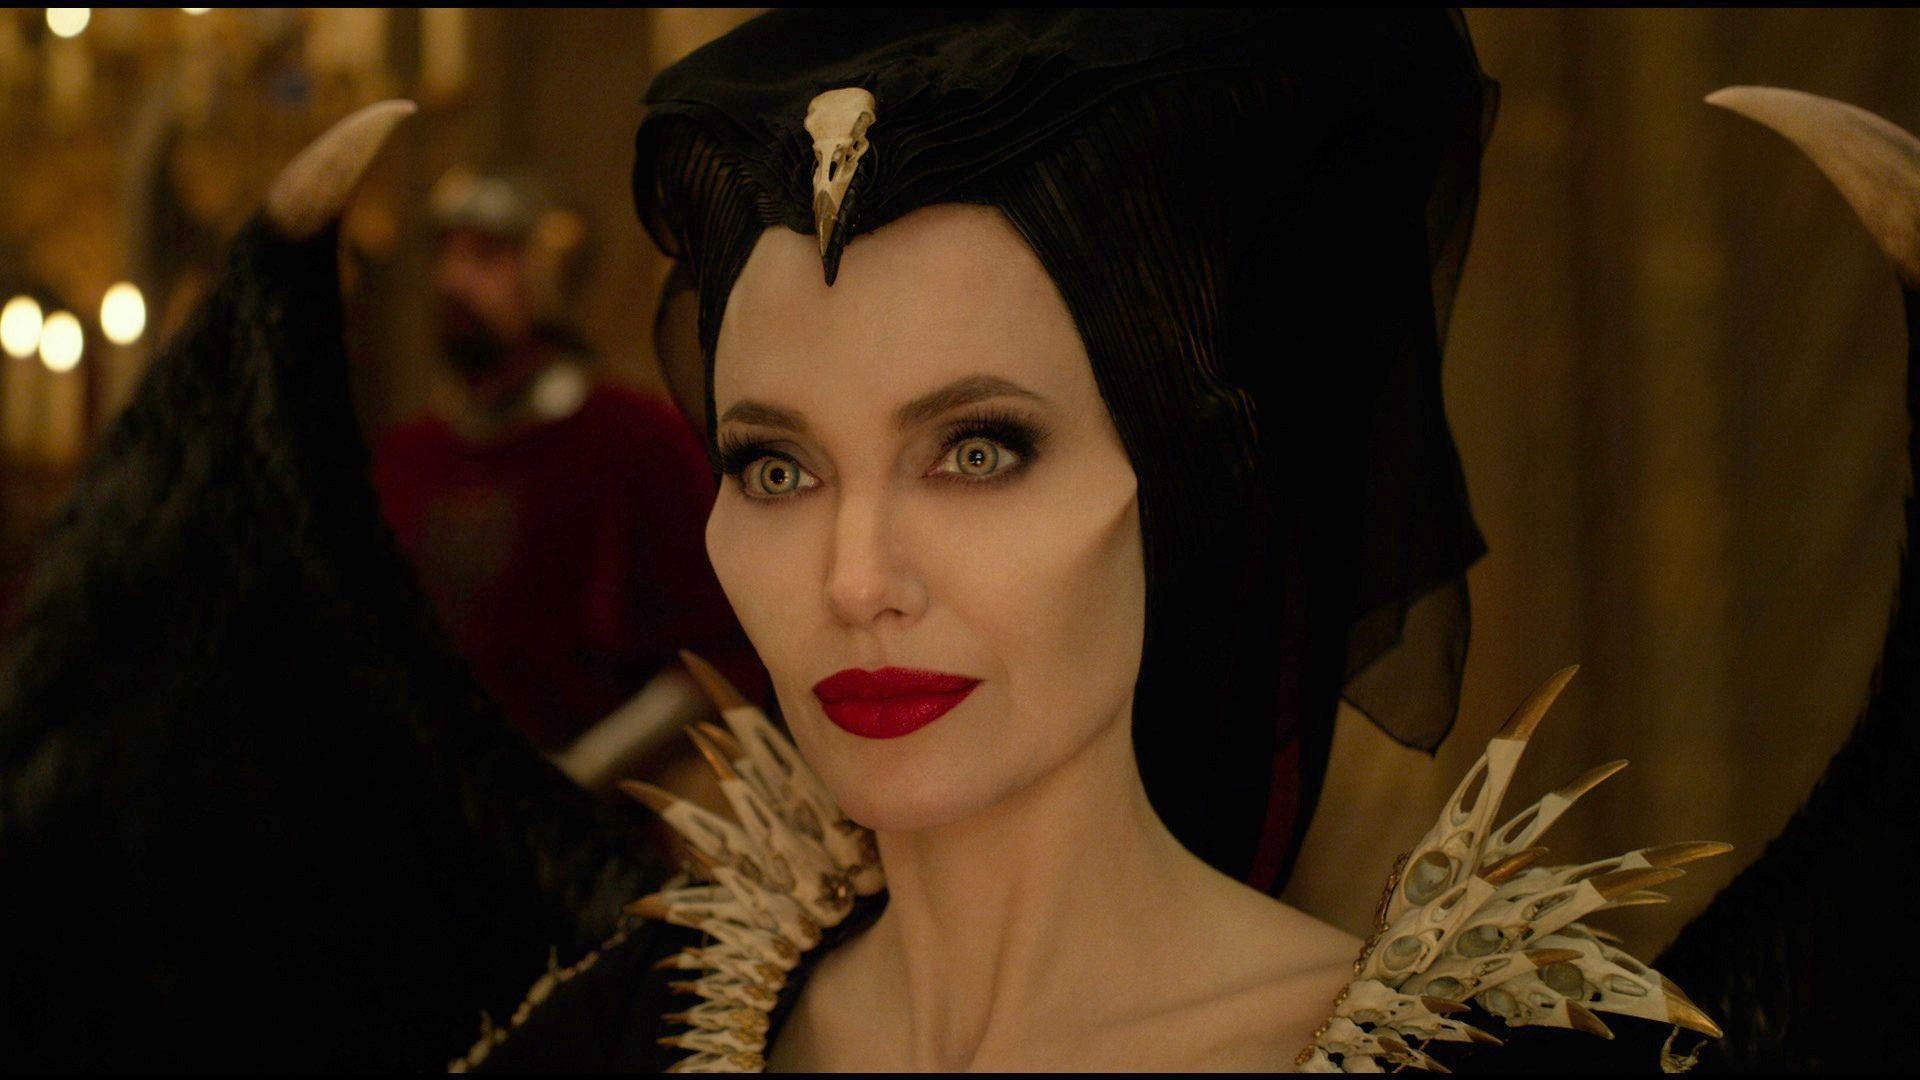 Angelina Jolie's Transformation Into Disney's Maleficent Is Bewitchingly Beautiful